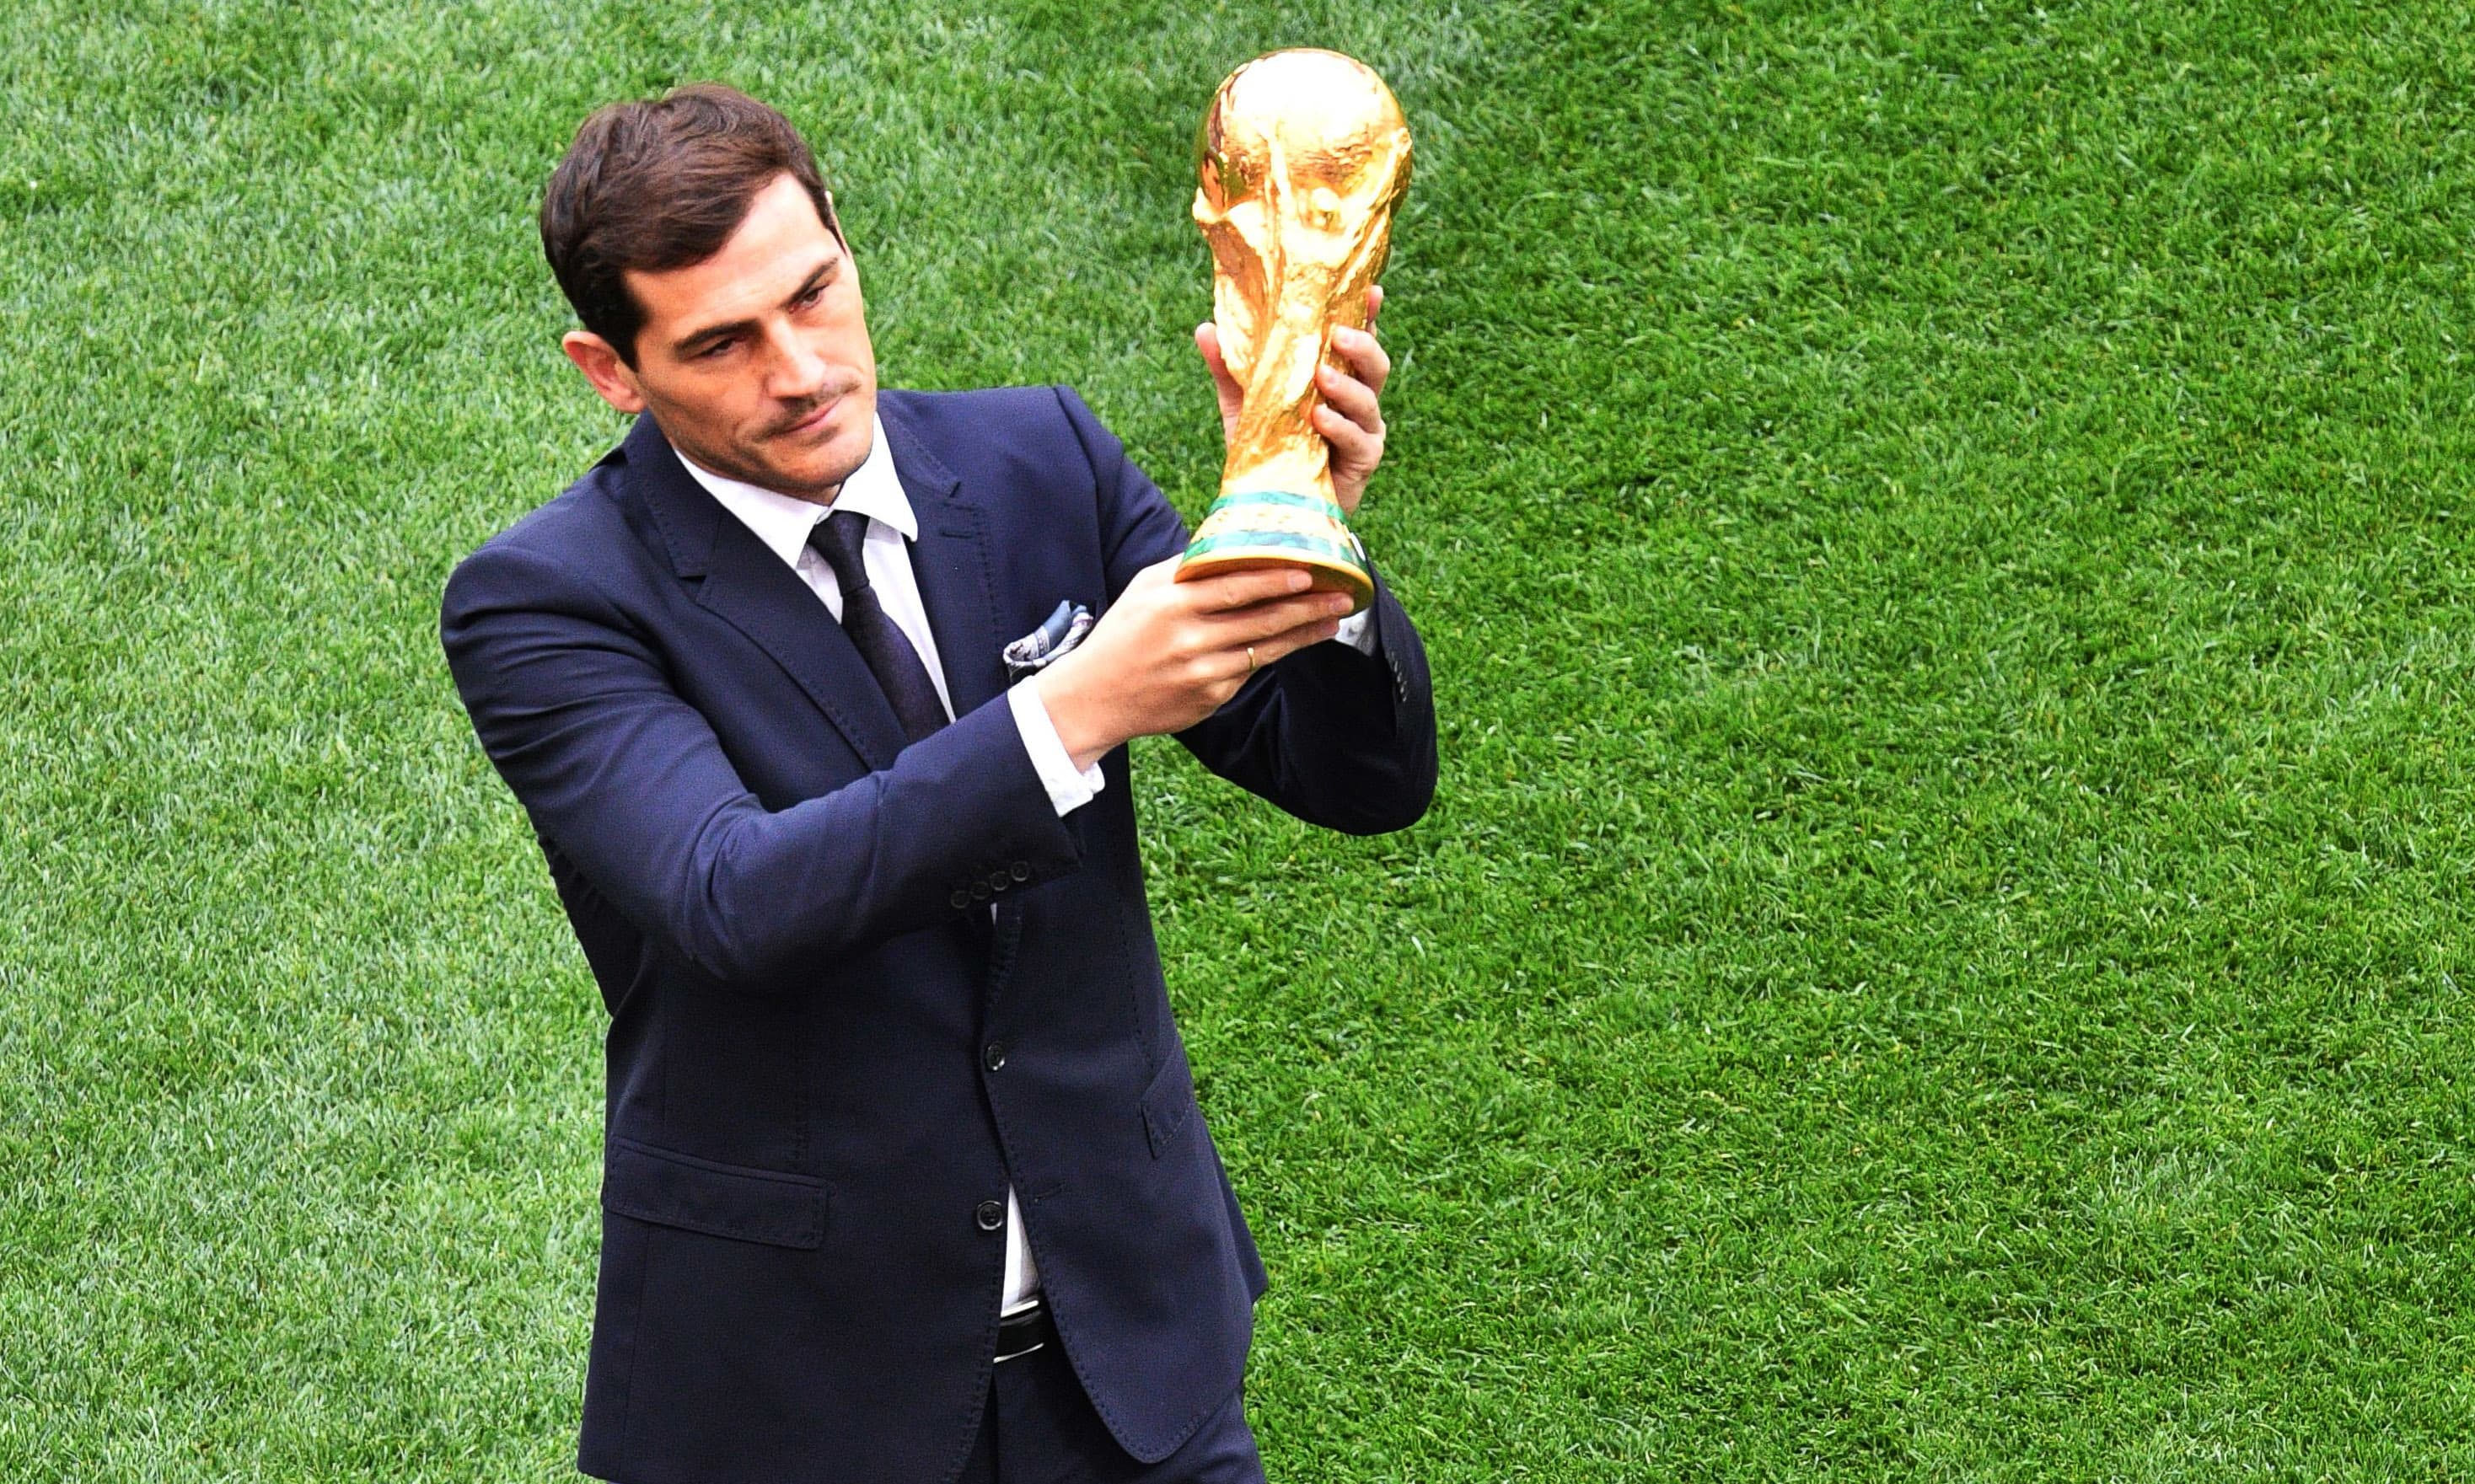 Spanish goalkeeper Iker Casillas holds the World Cup trophy during the Opening Ceremony before the Russia 2018 World Cup Group A football match between Russia and Saudi Arabia at the Luzhniki Stadium in Moscow on June 14, 2018. — AFP